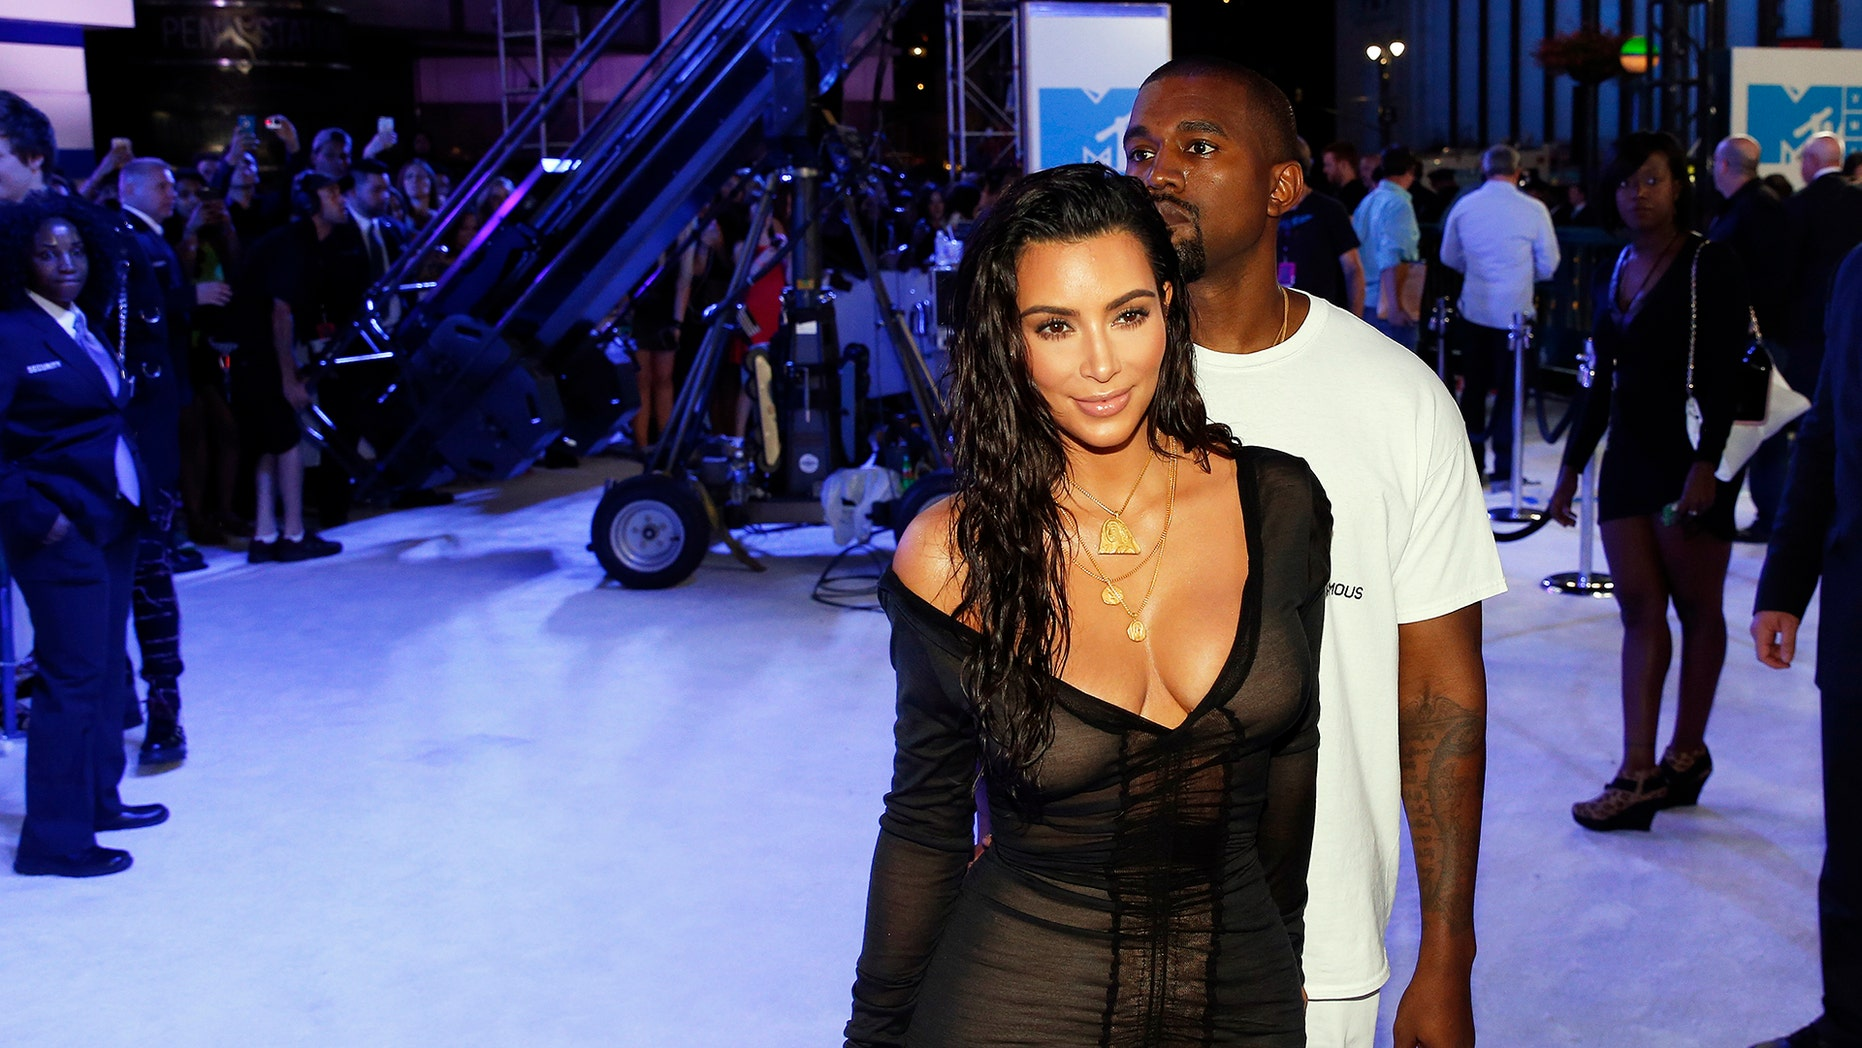 Kim Kardashian and Kanye West arrive at the 2016 MTV Video Music Awards in New York, U.S., August 28, 2016.